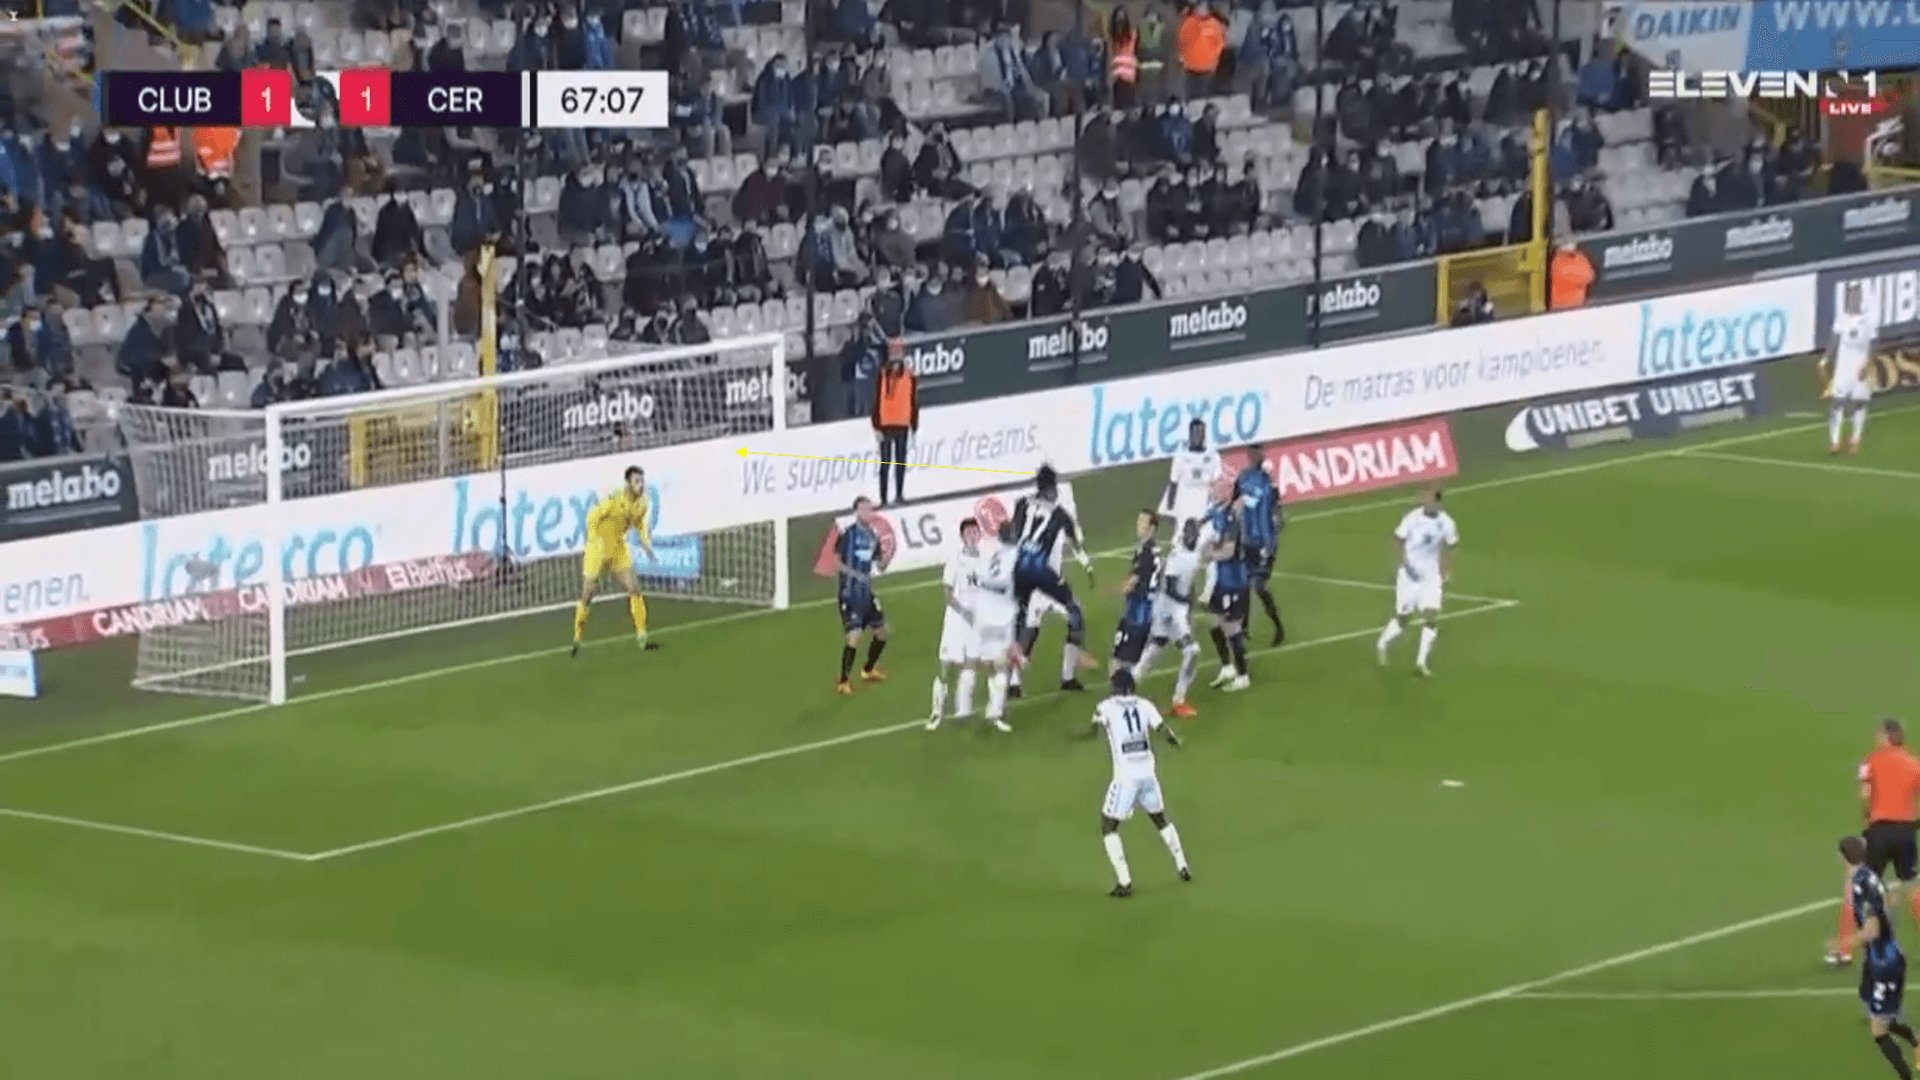 Belgian Pro League - Club Brugge v Cercle Brugge - tactical analysis tactics